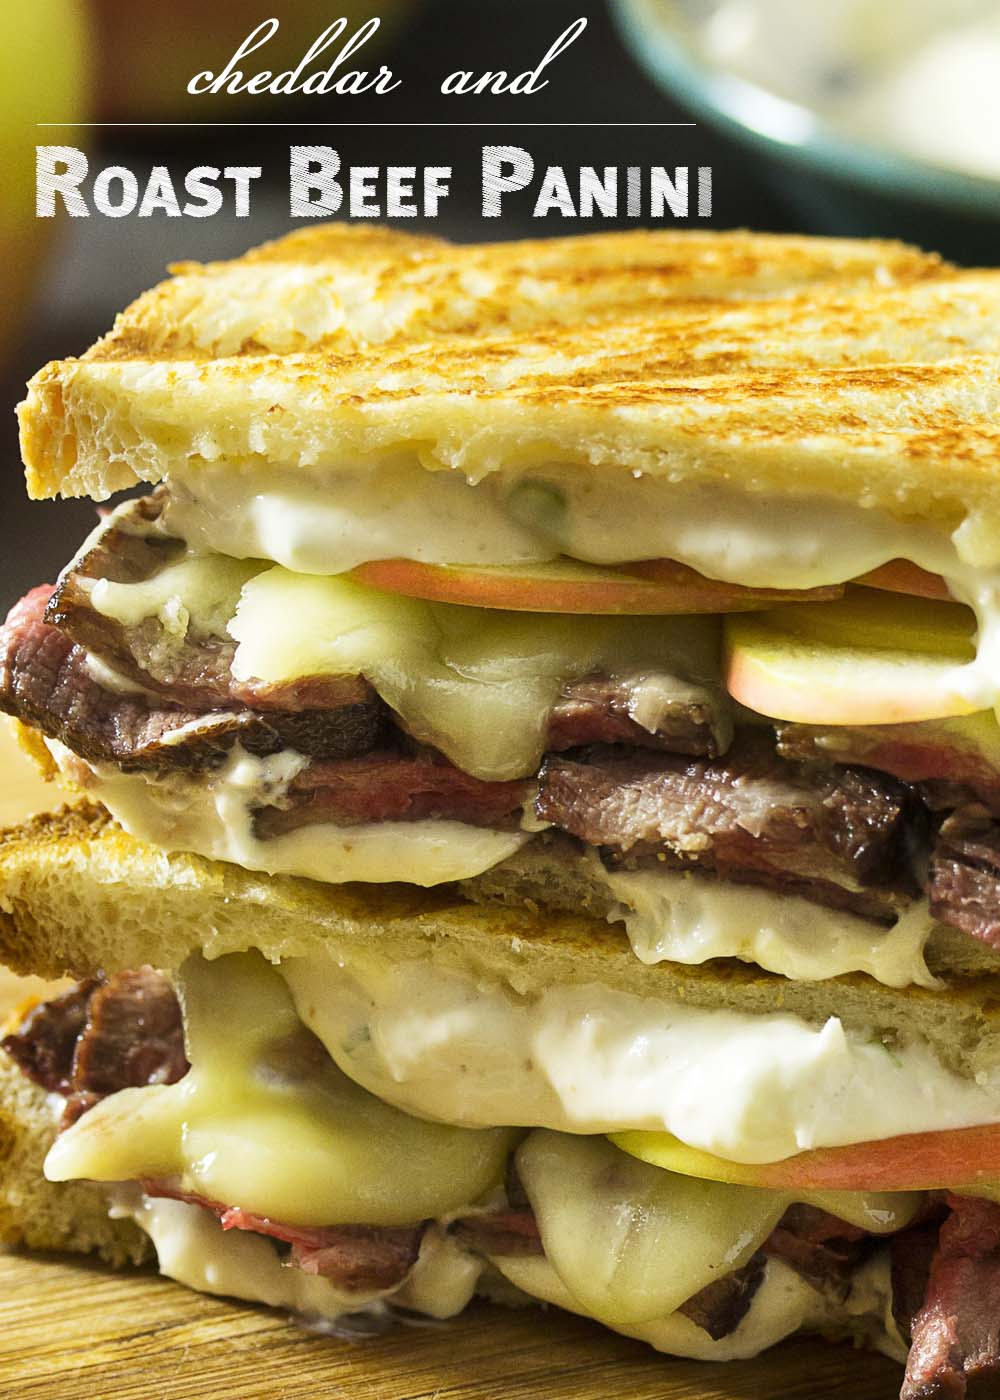 What to do with leftover roast beef? Layer it up on sourdough bread with apples, cheddar, and horseradish sauce for a roast beef panini! Great for lunch or dinner.   justalittlebitofbacon.com